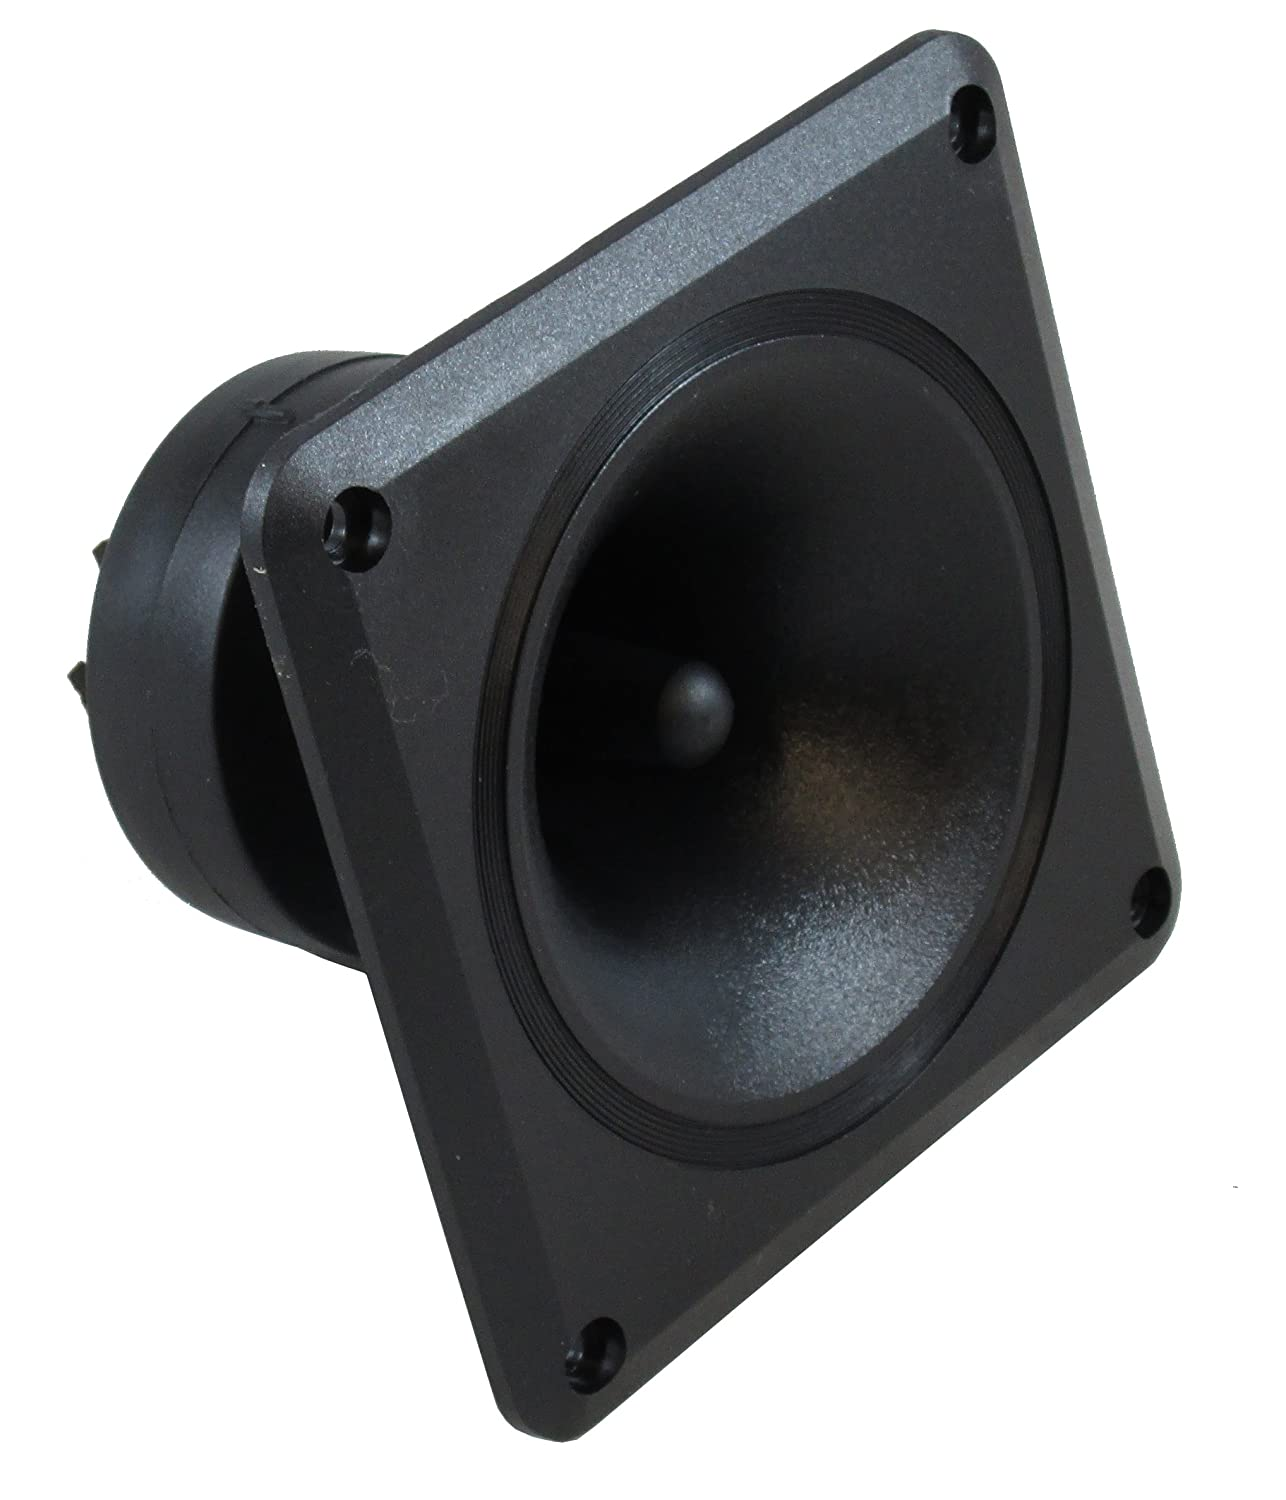 Blast King 73BKT0165 2 1/2-Inch Boosted Tweeter